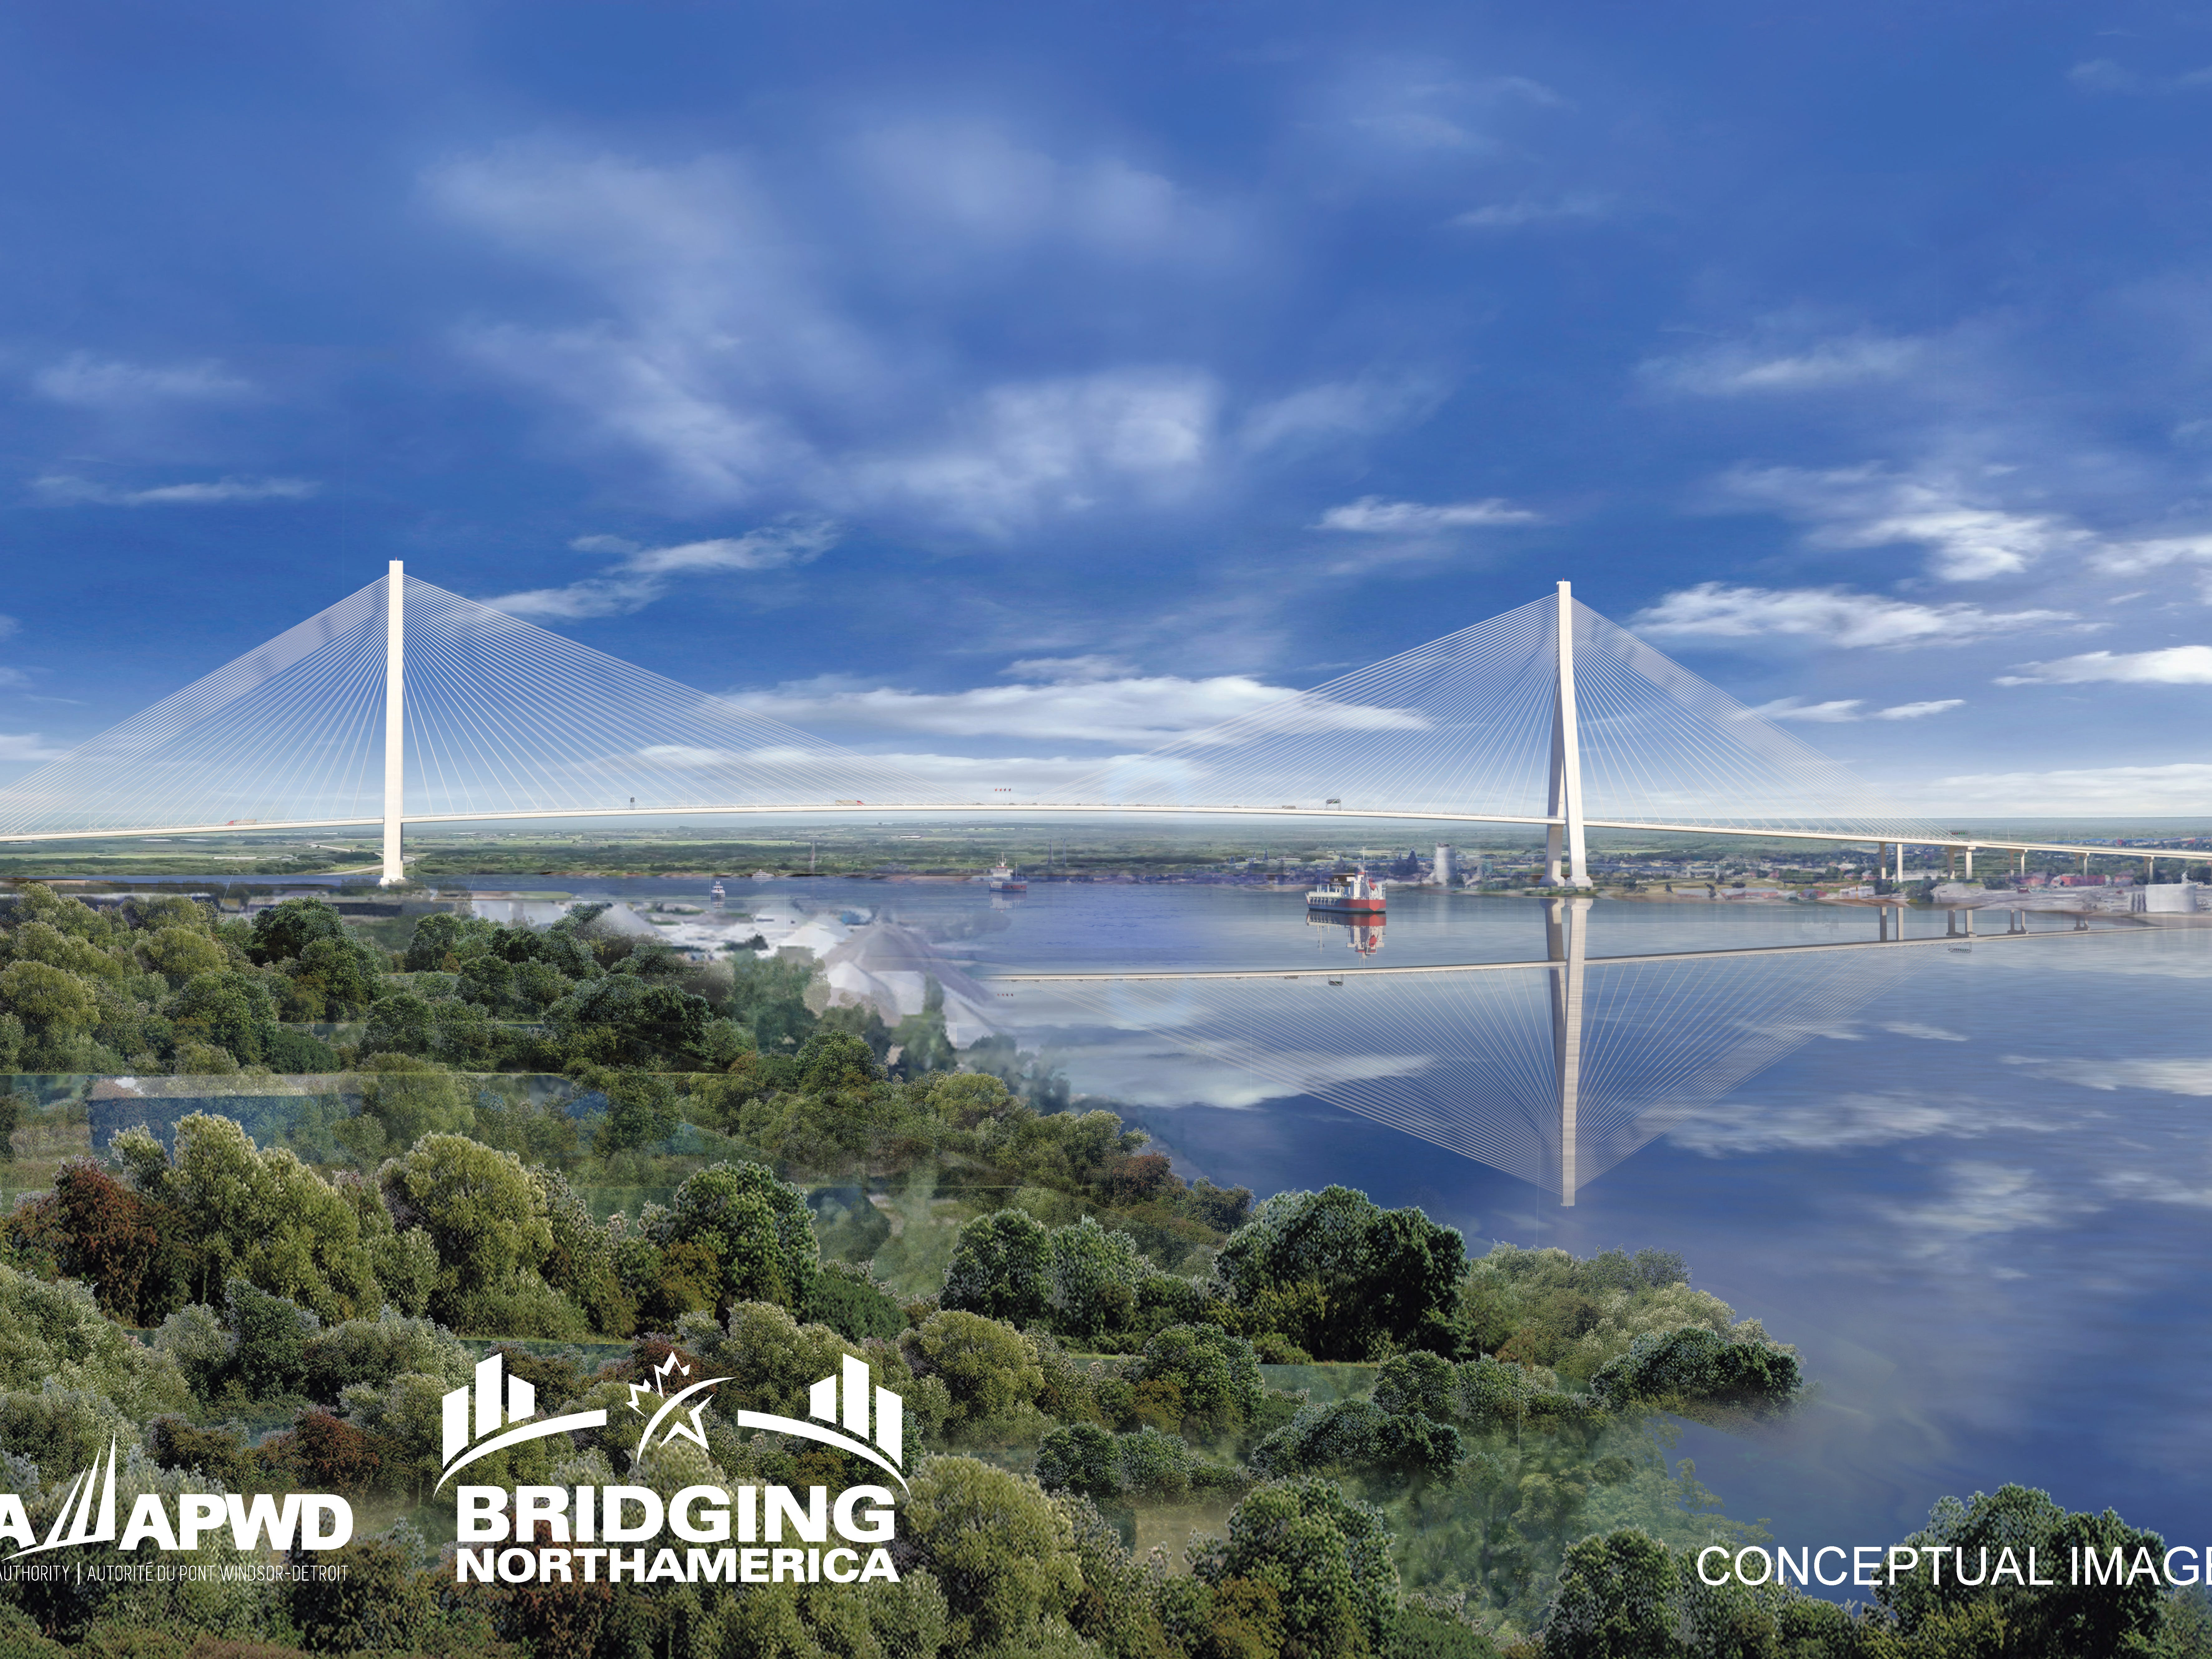 The bridge is expected to cost $4.4 billion. Its target opening date is late 2024.